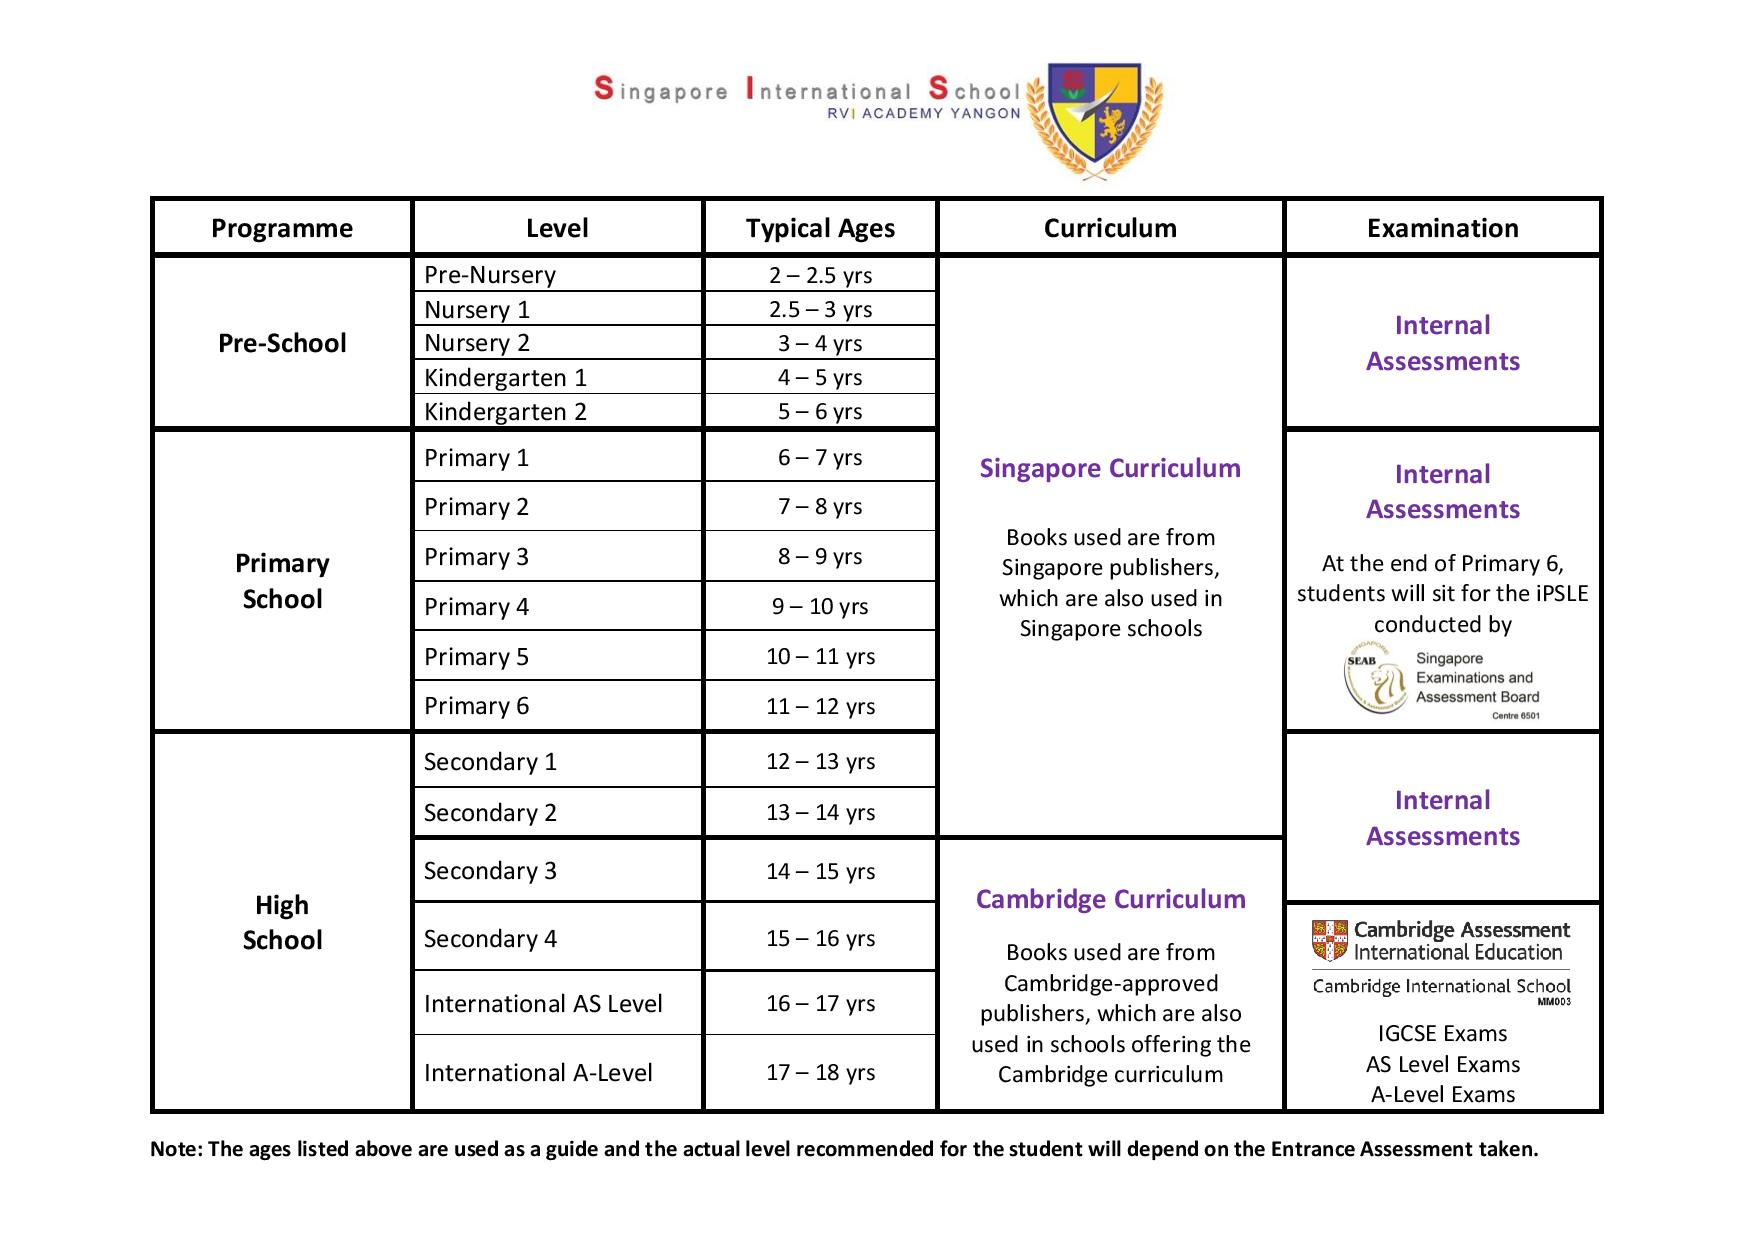 Grade Levels and Curriculum